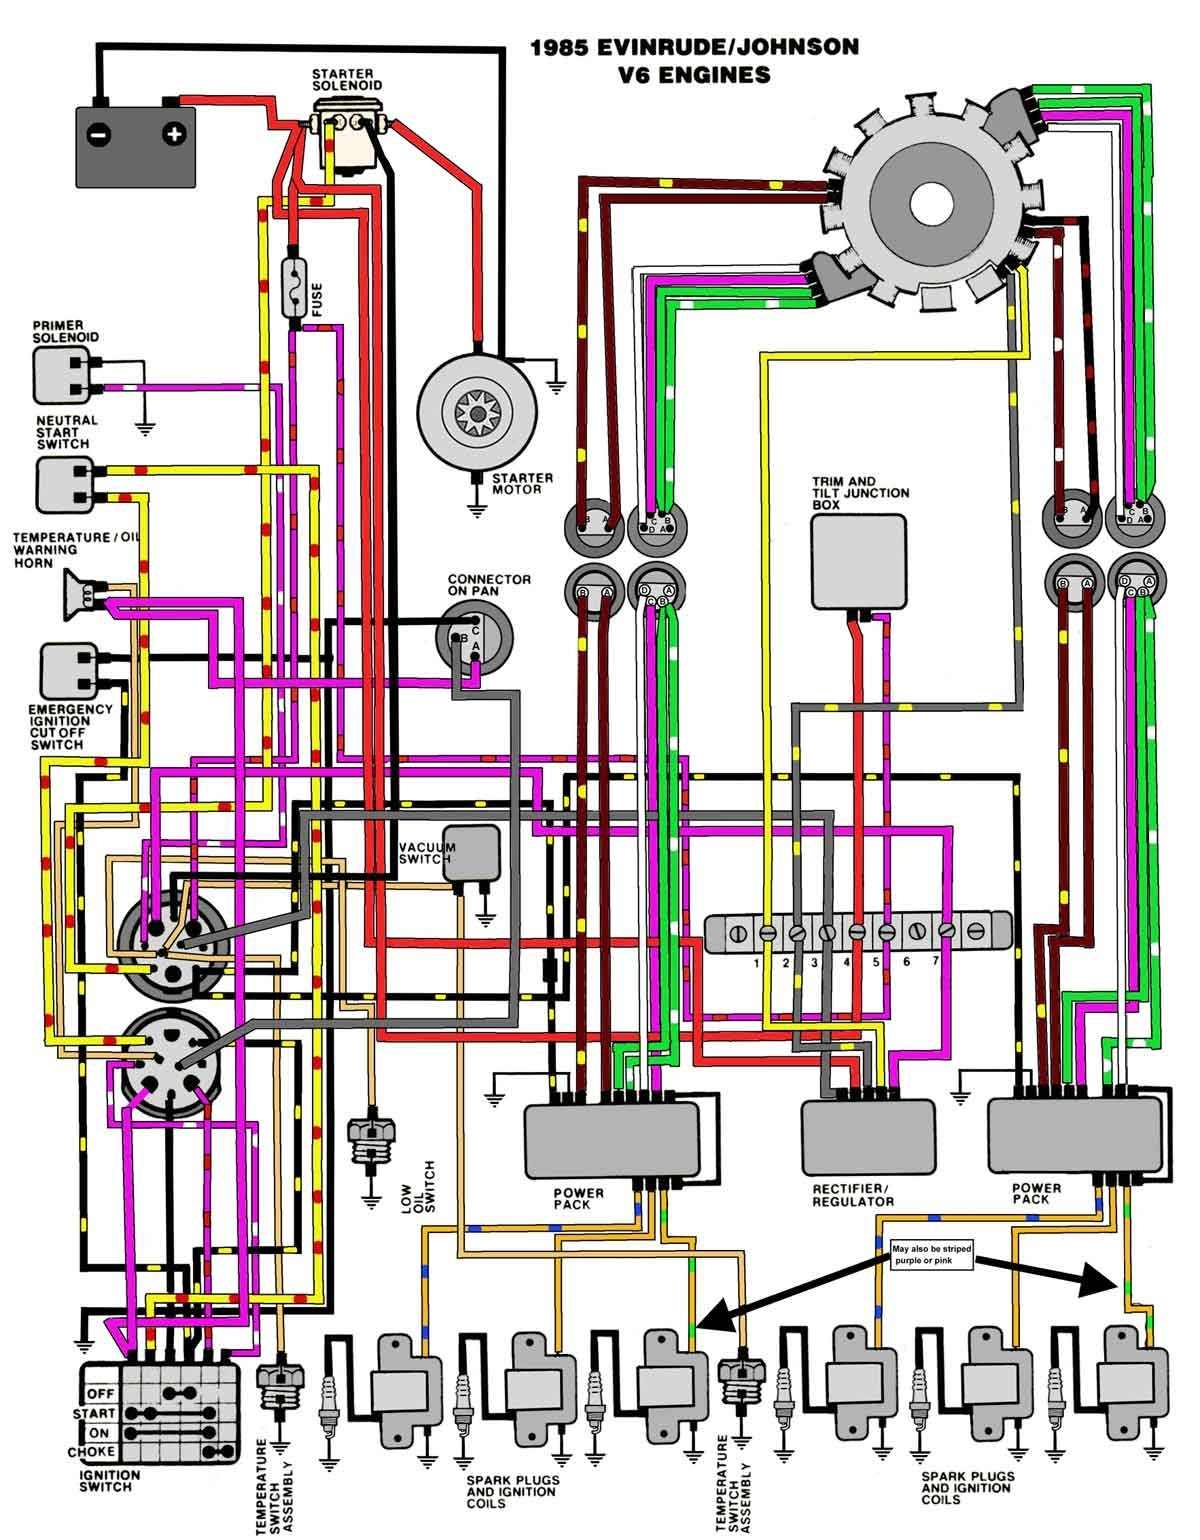 Johnson Outboard Motor Wiring Diagram 2 Light Switches Wiring Diagram 2005ram Losdol2 Jeanjaures37 Fr